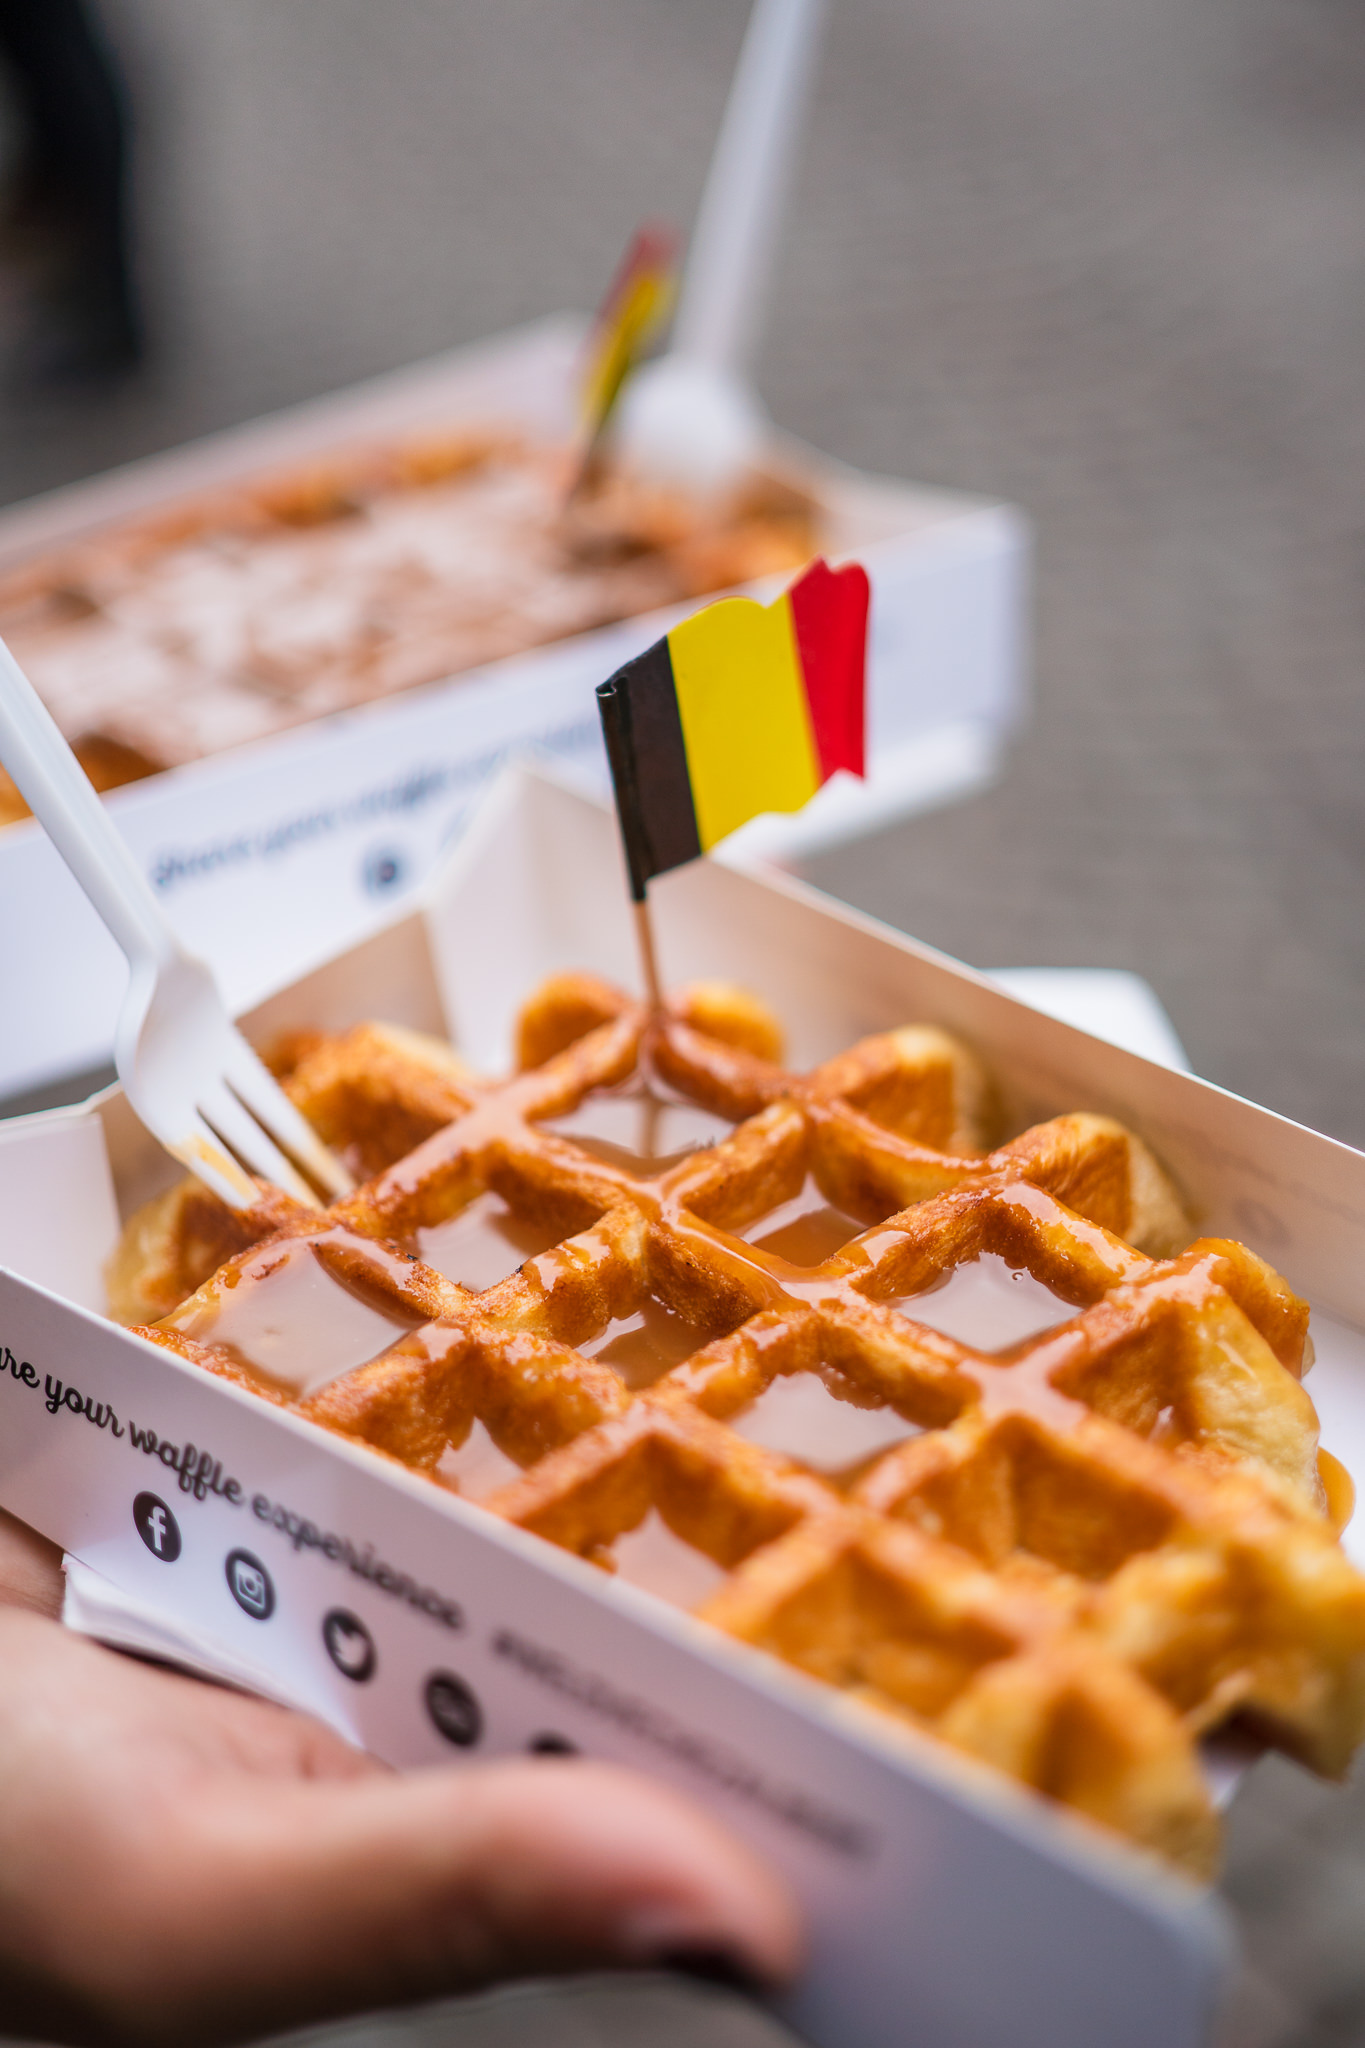 This is a caramel-covered Liege waffle — my diet would consist solely of this if I lived in Bruges.